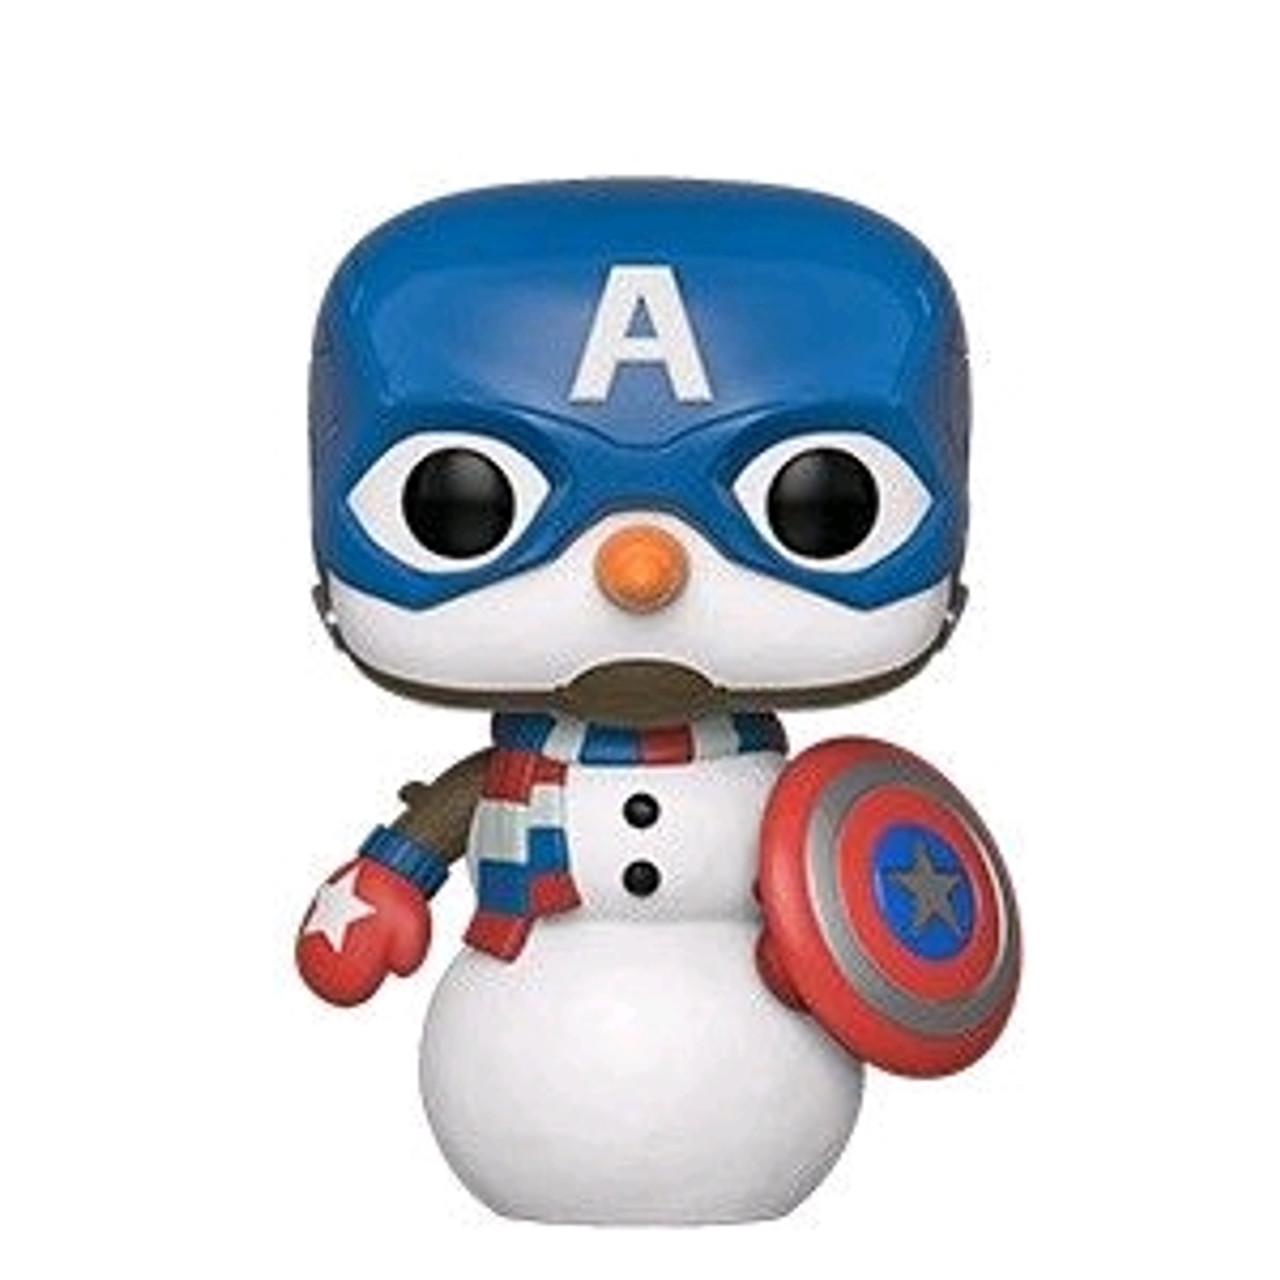 Christmas Groot Funko Pop.The Avengers Captain America As Snowman Christmas Holiday